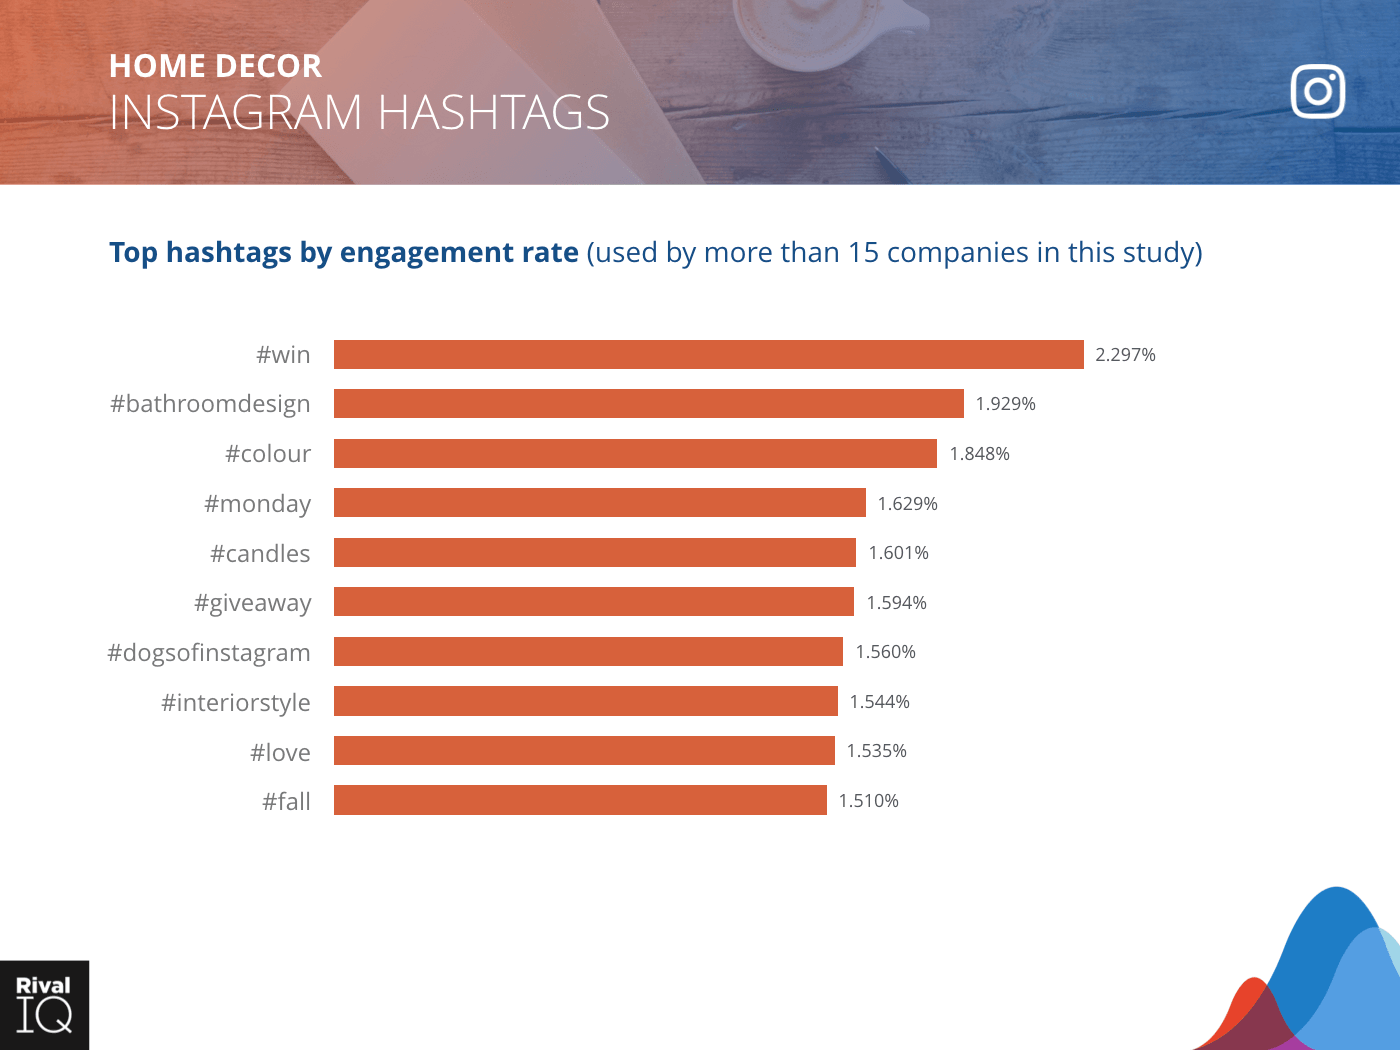 Home Decor Industry: bar graph, top hashtags by engagement rate on Instagram